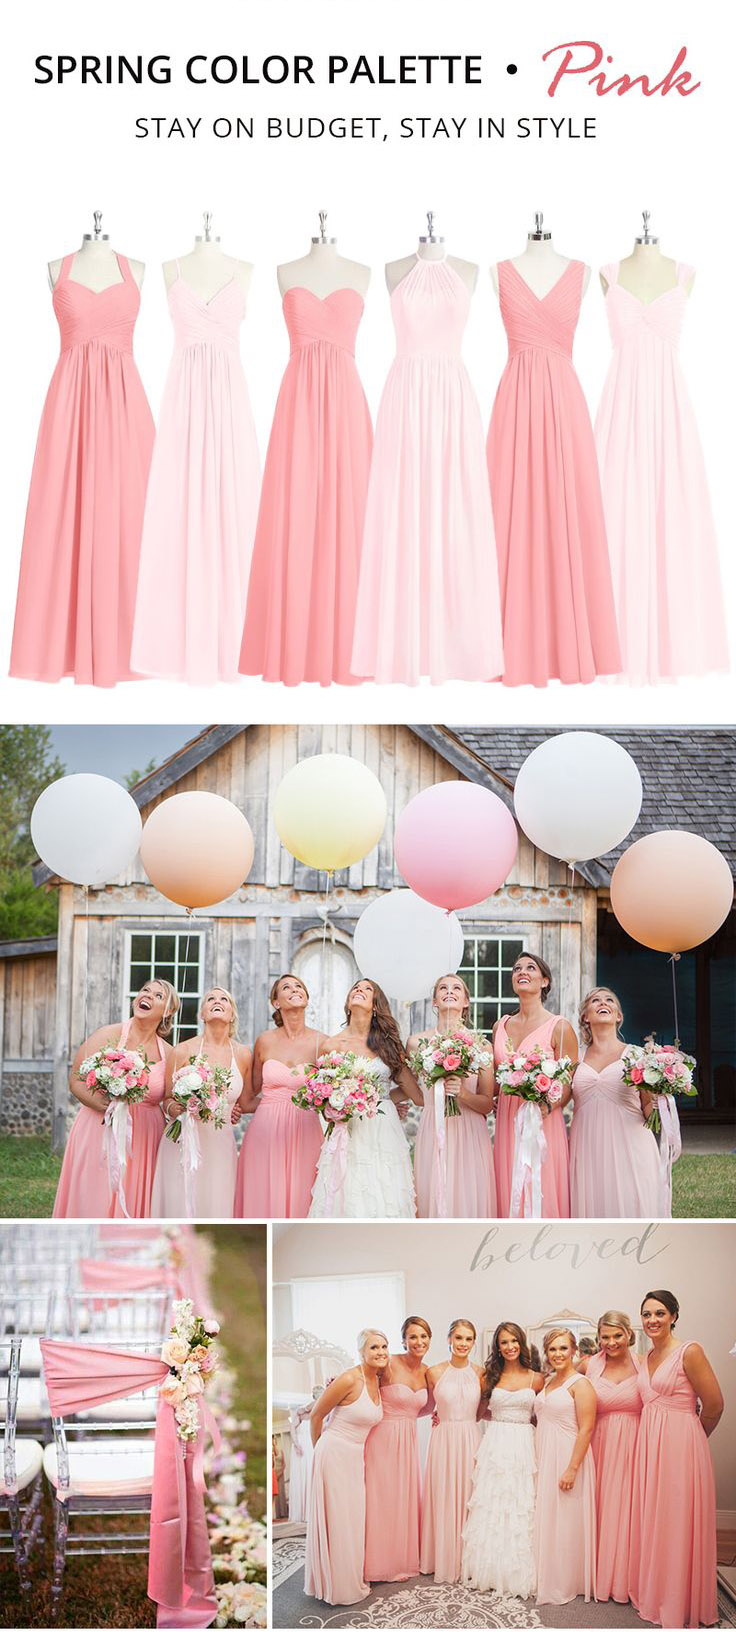 Trending Spring Color Palette for Your Bridesmaid Dresses-Pink